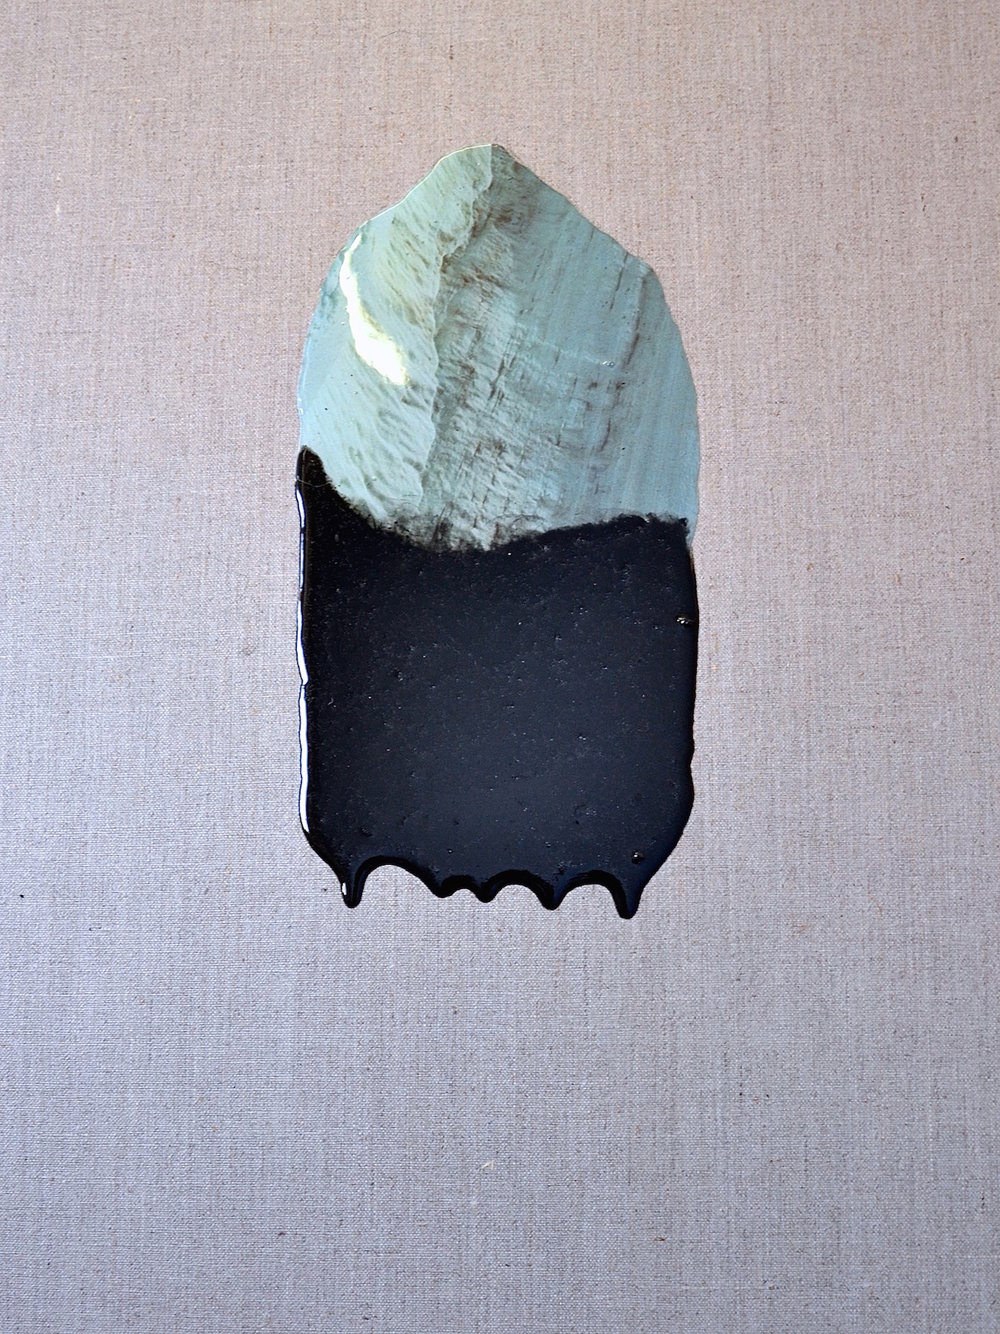 Ultra Plinian, Collage, Resin and Pigment on Linen, 60x45cm, 2016.jpg